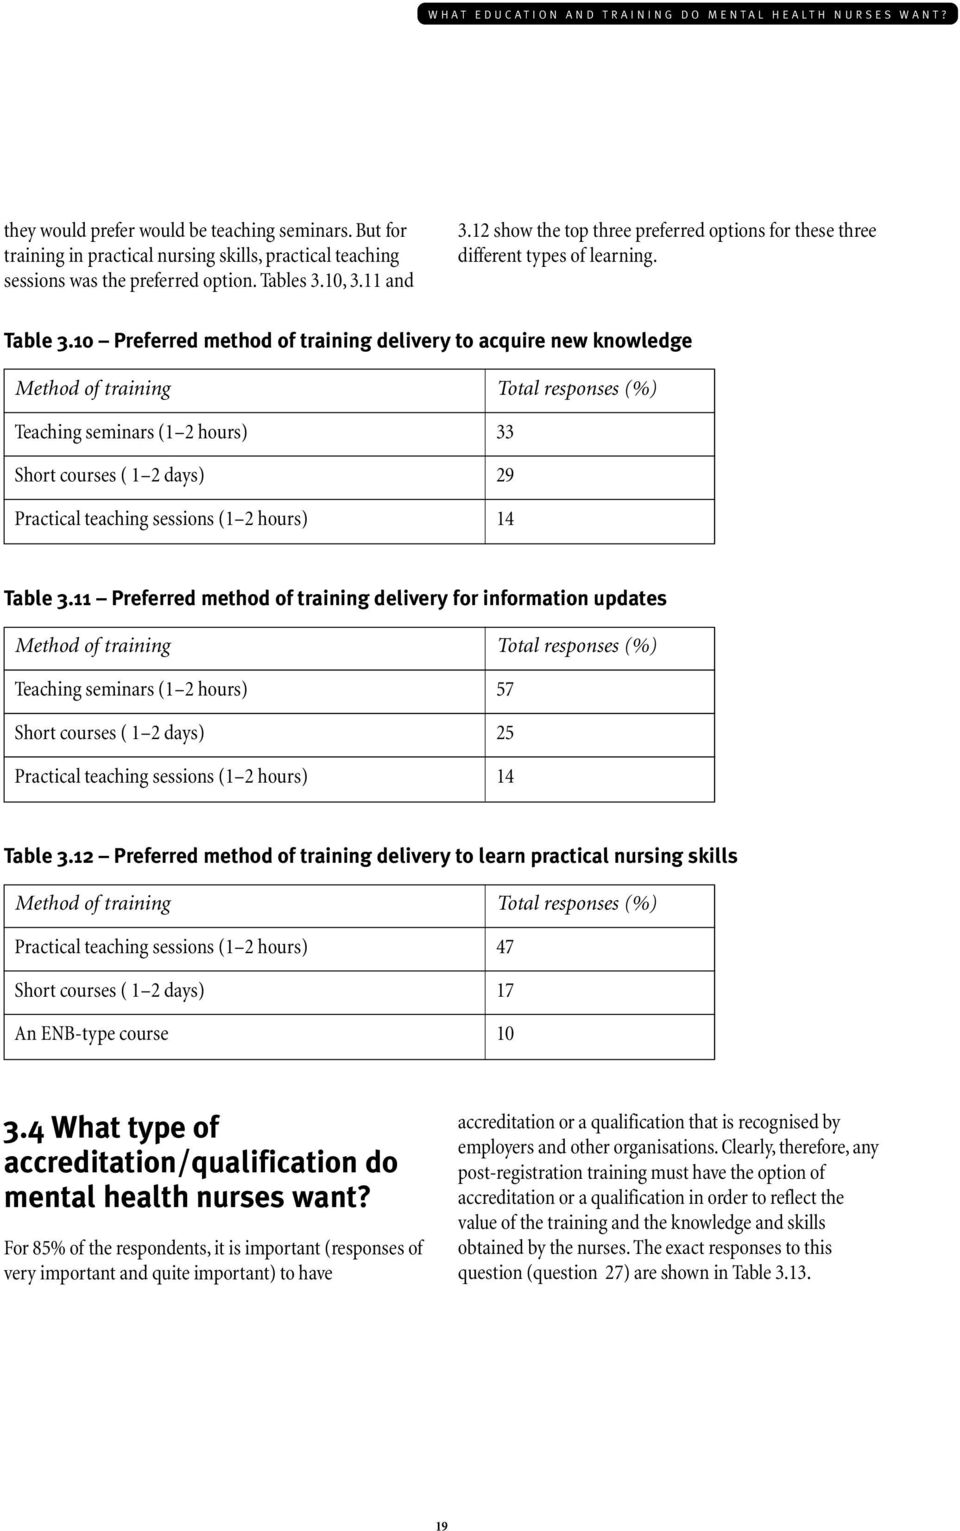 12 show the top three preferred options for these three different types of learning. Table 3.